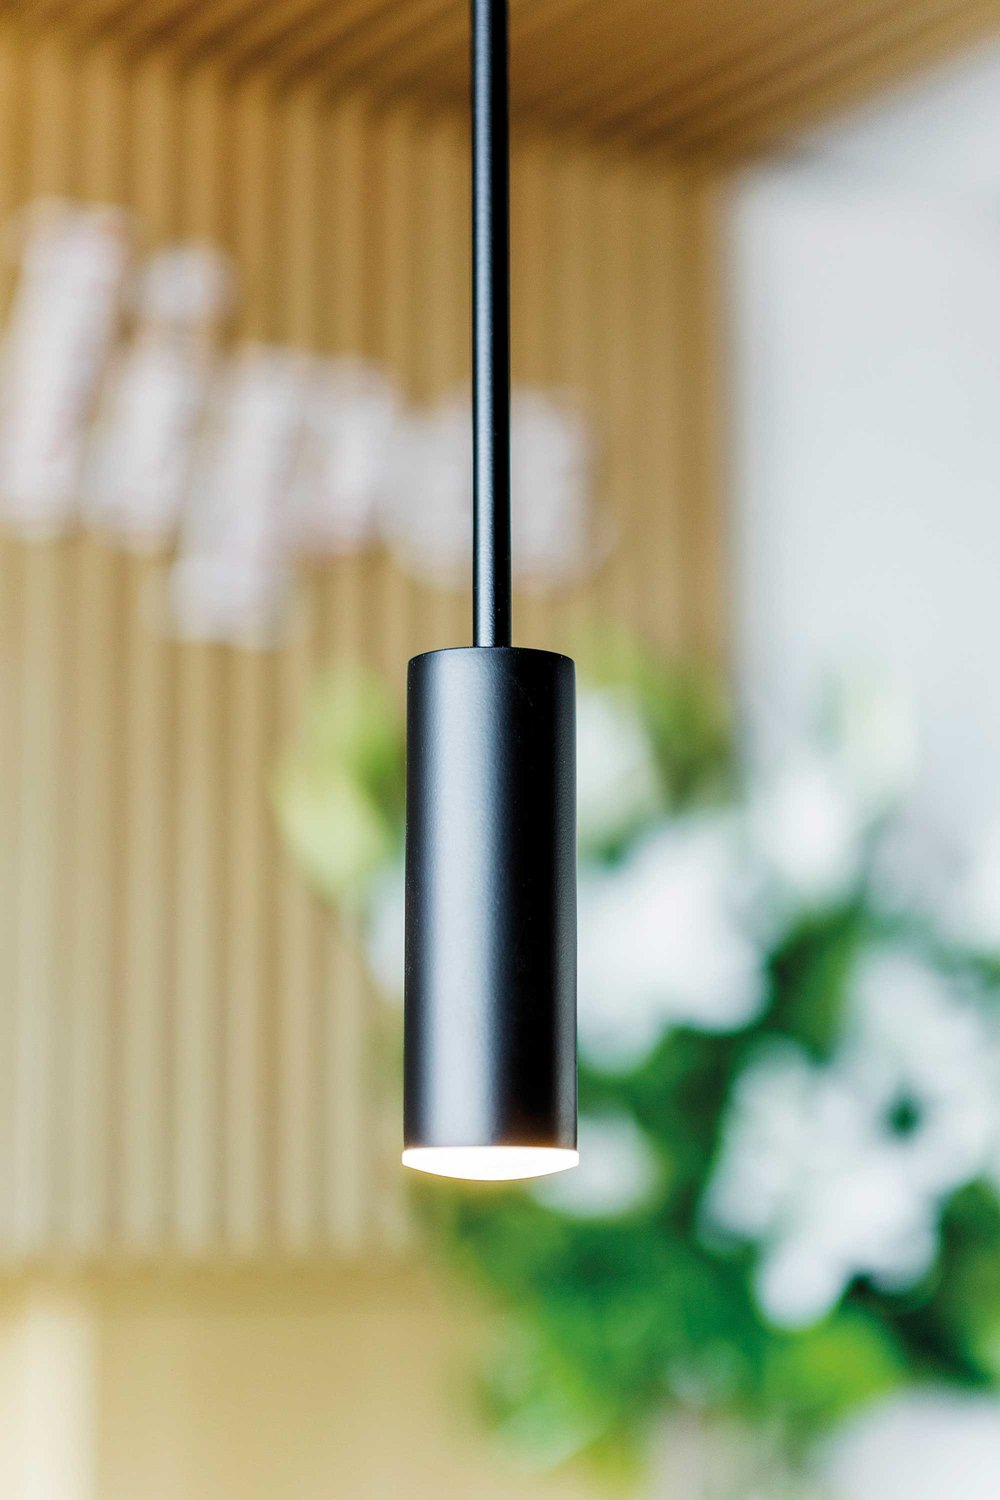 Volta_T-3534_suspension_lamp_estiluz_p01.jpg